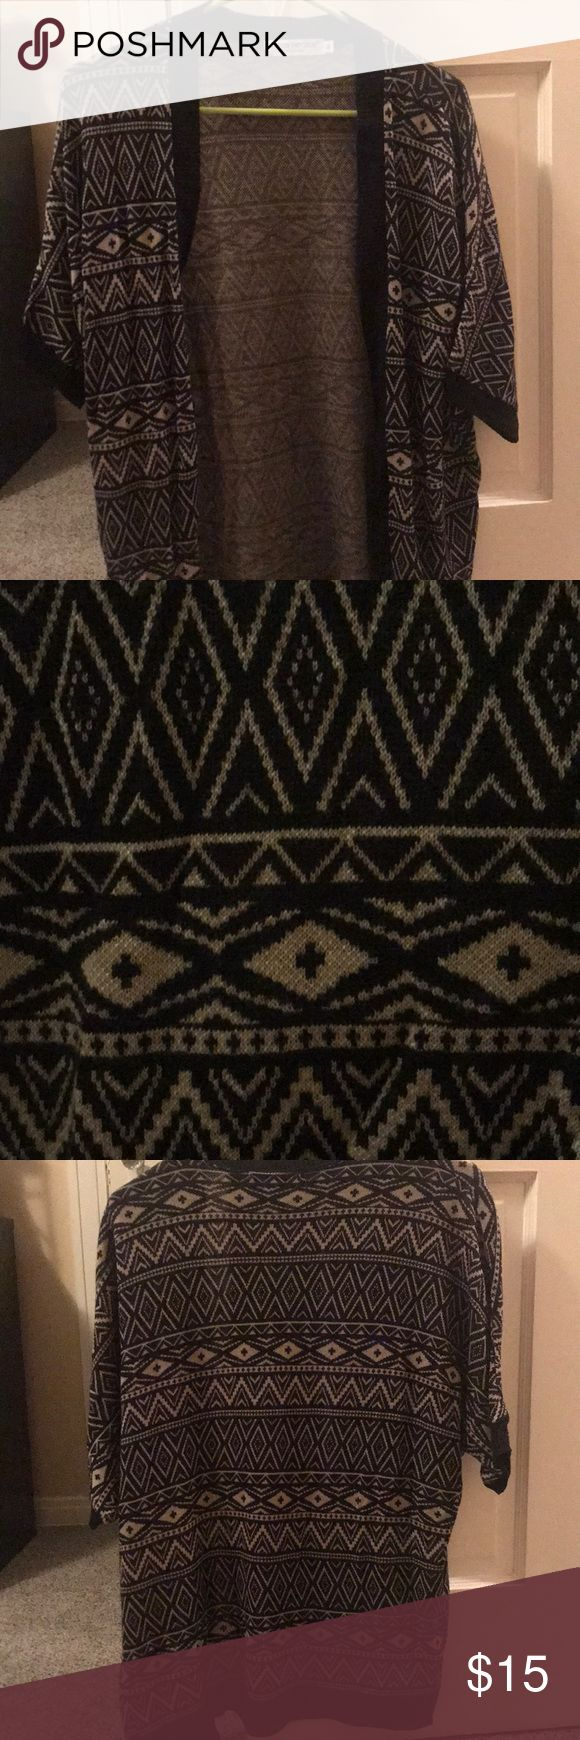 Short sleeve cardigan Black/tan short sleeve cardigan with Aztec print Cotton Emporium Sweaters Cardigans